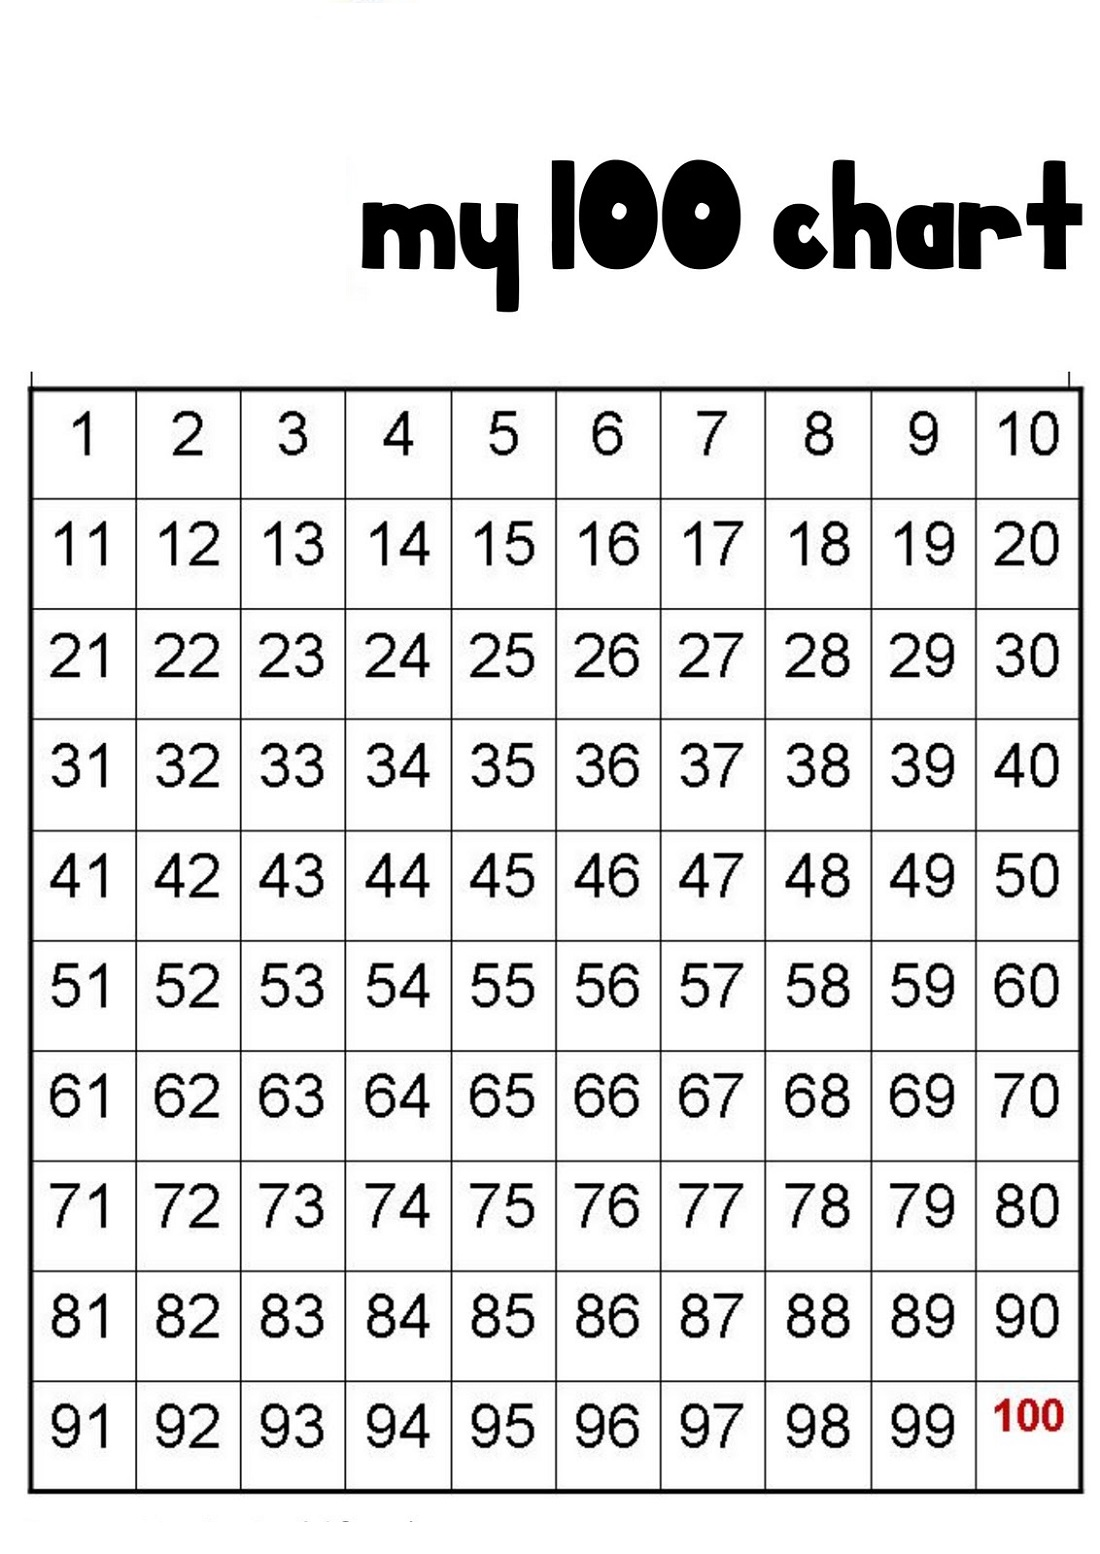 1-100-number-chart-to-learn